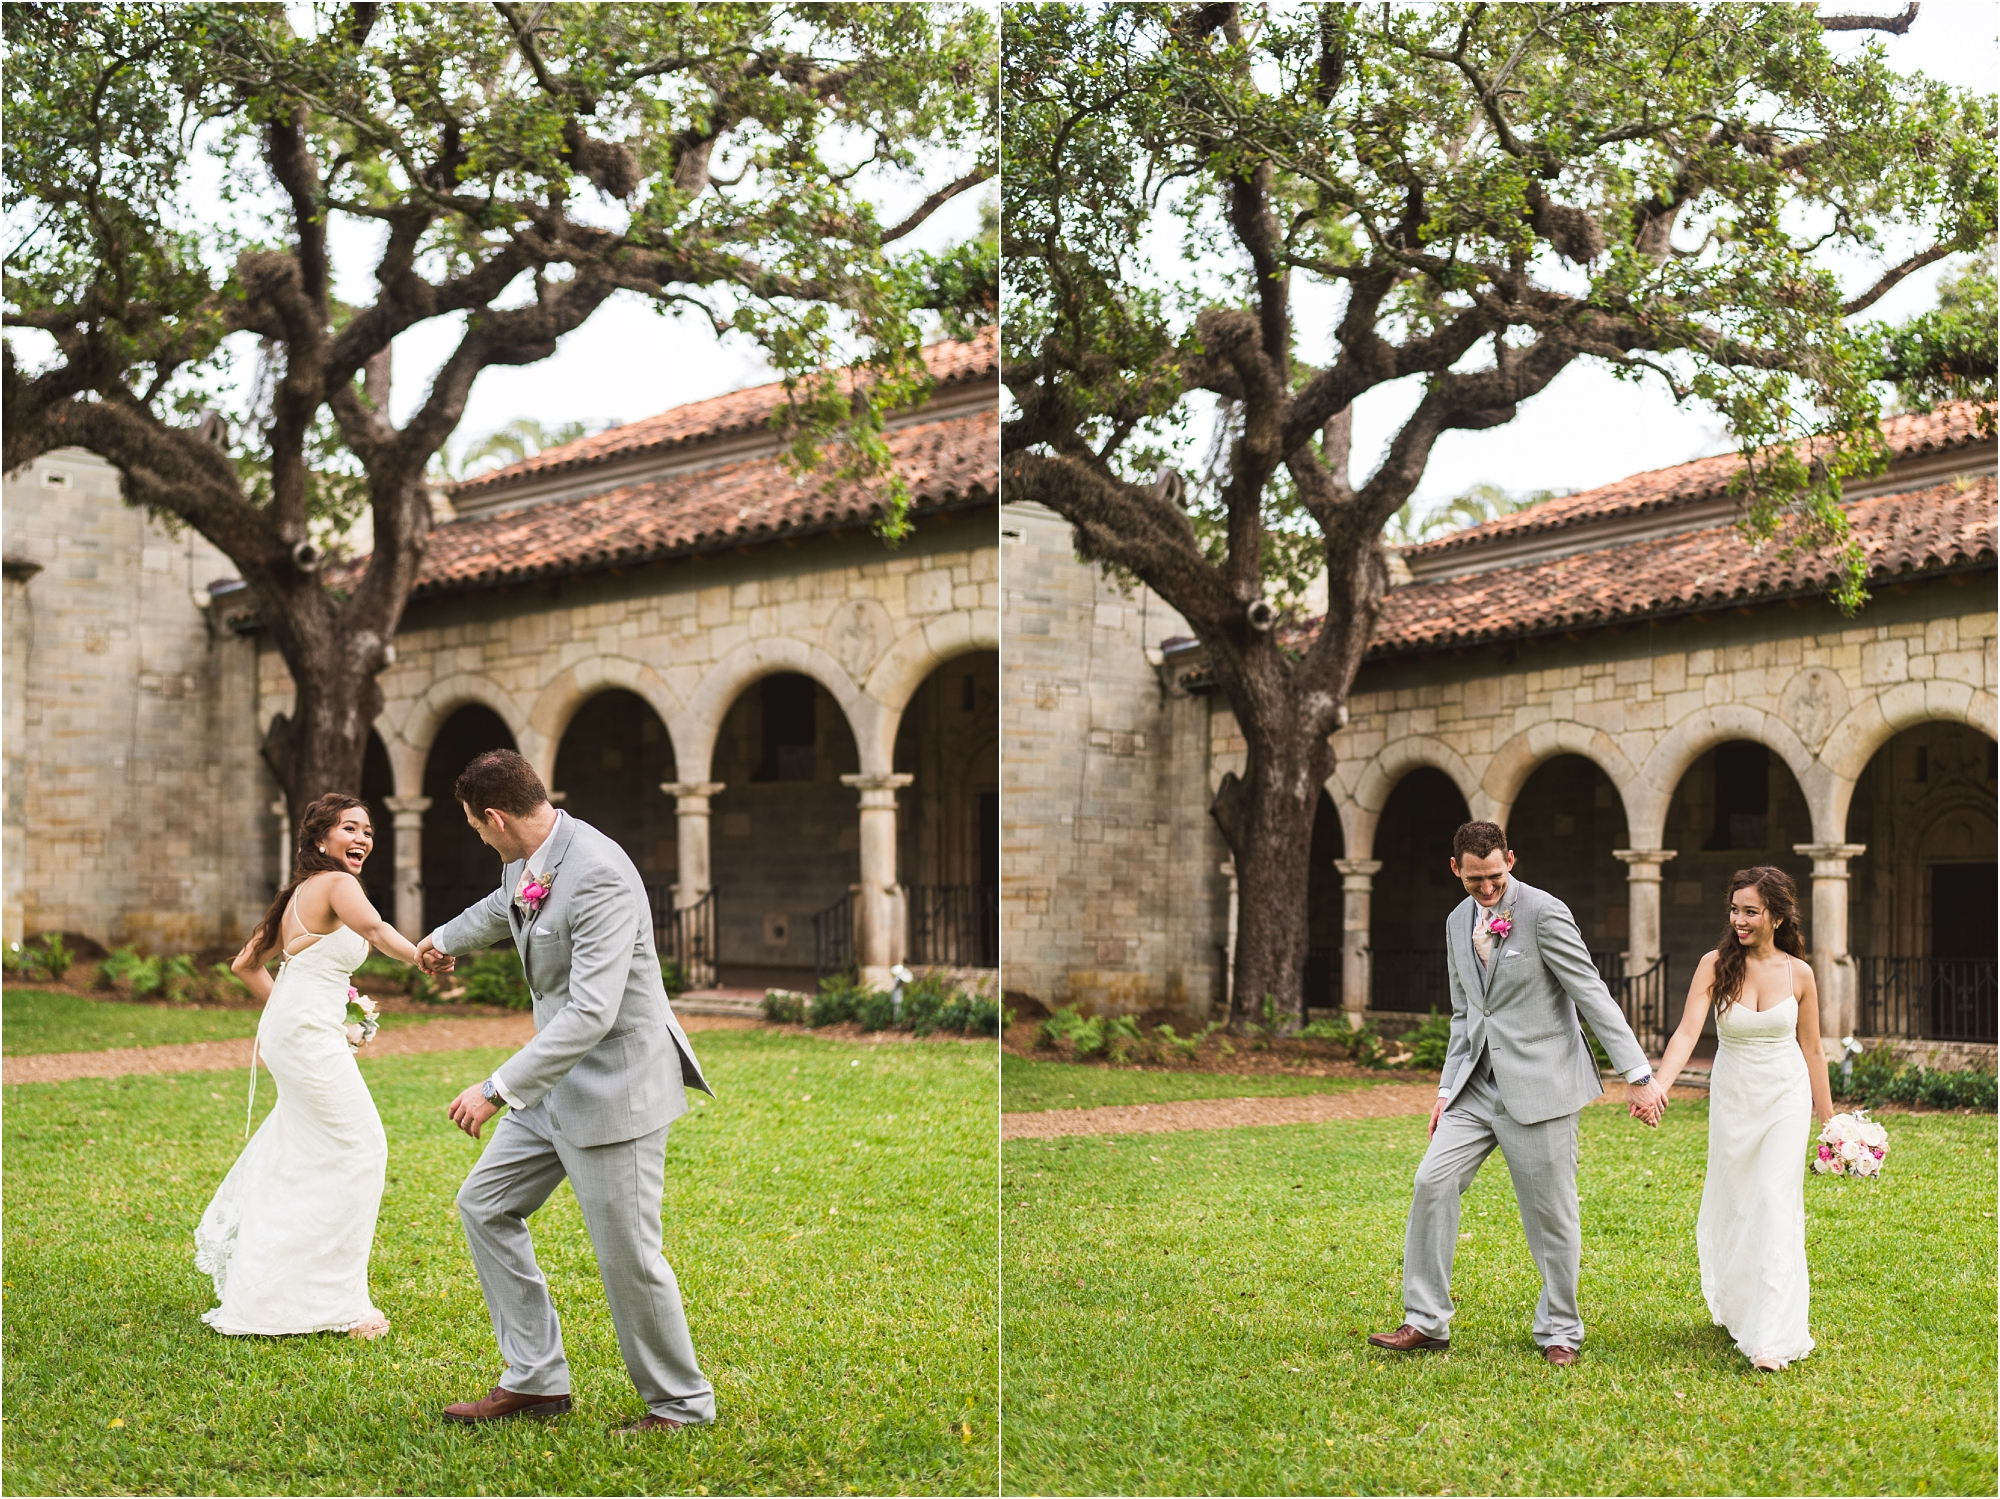 Spanish-Monastery-miami-beach-outdoor-elegant-wedding-photographer-jessenia-gonzalez_1217.jpg